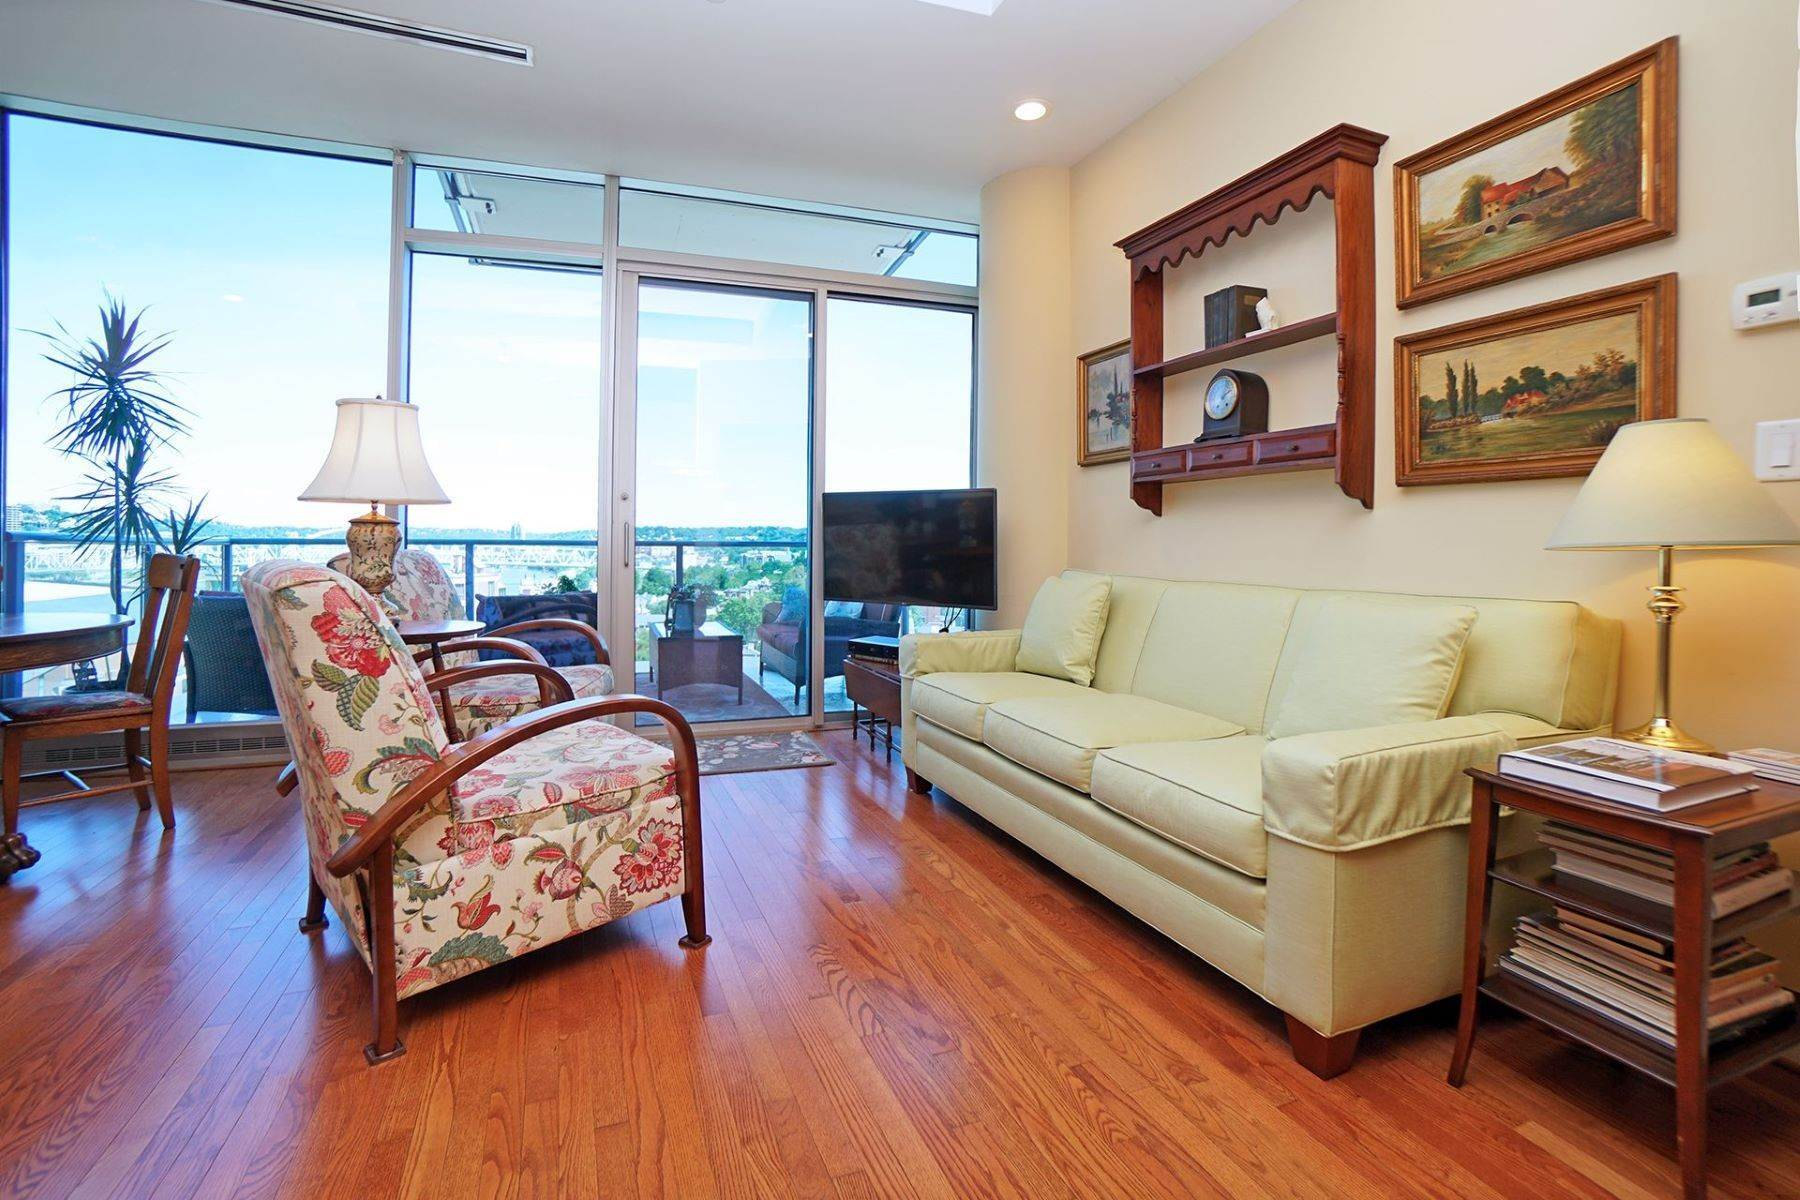 2. Condominiums for Sale at 1 Roebling Way #1105, Covington, KY 41011 1 Roebling Way #1105 Covington, Kentucky 41011 United States